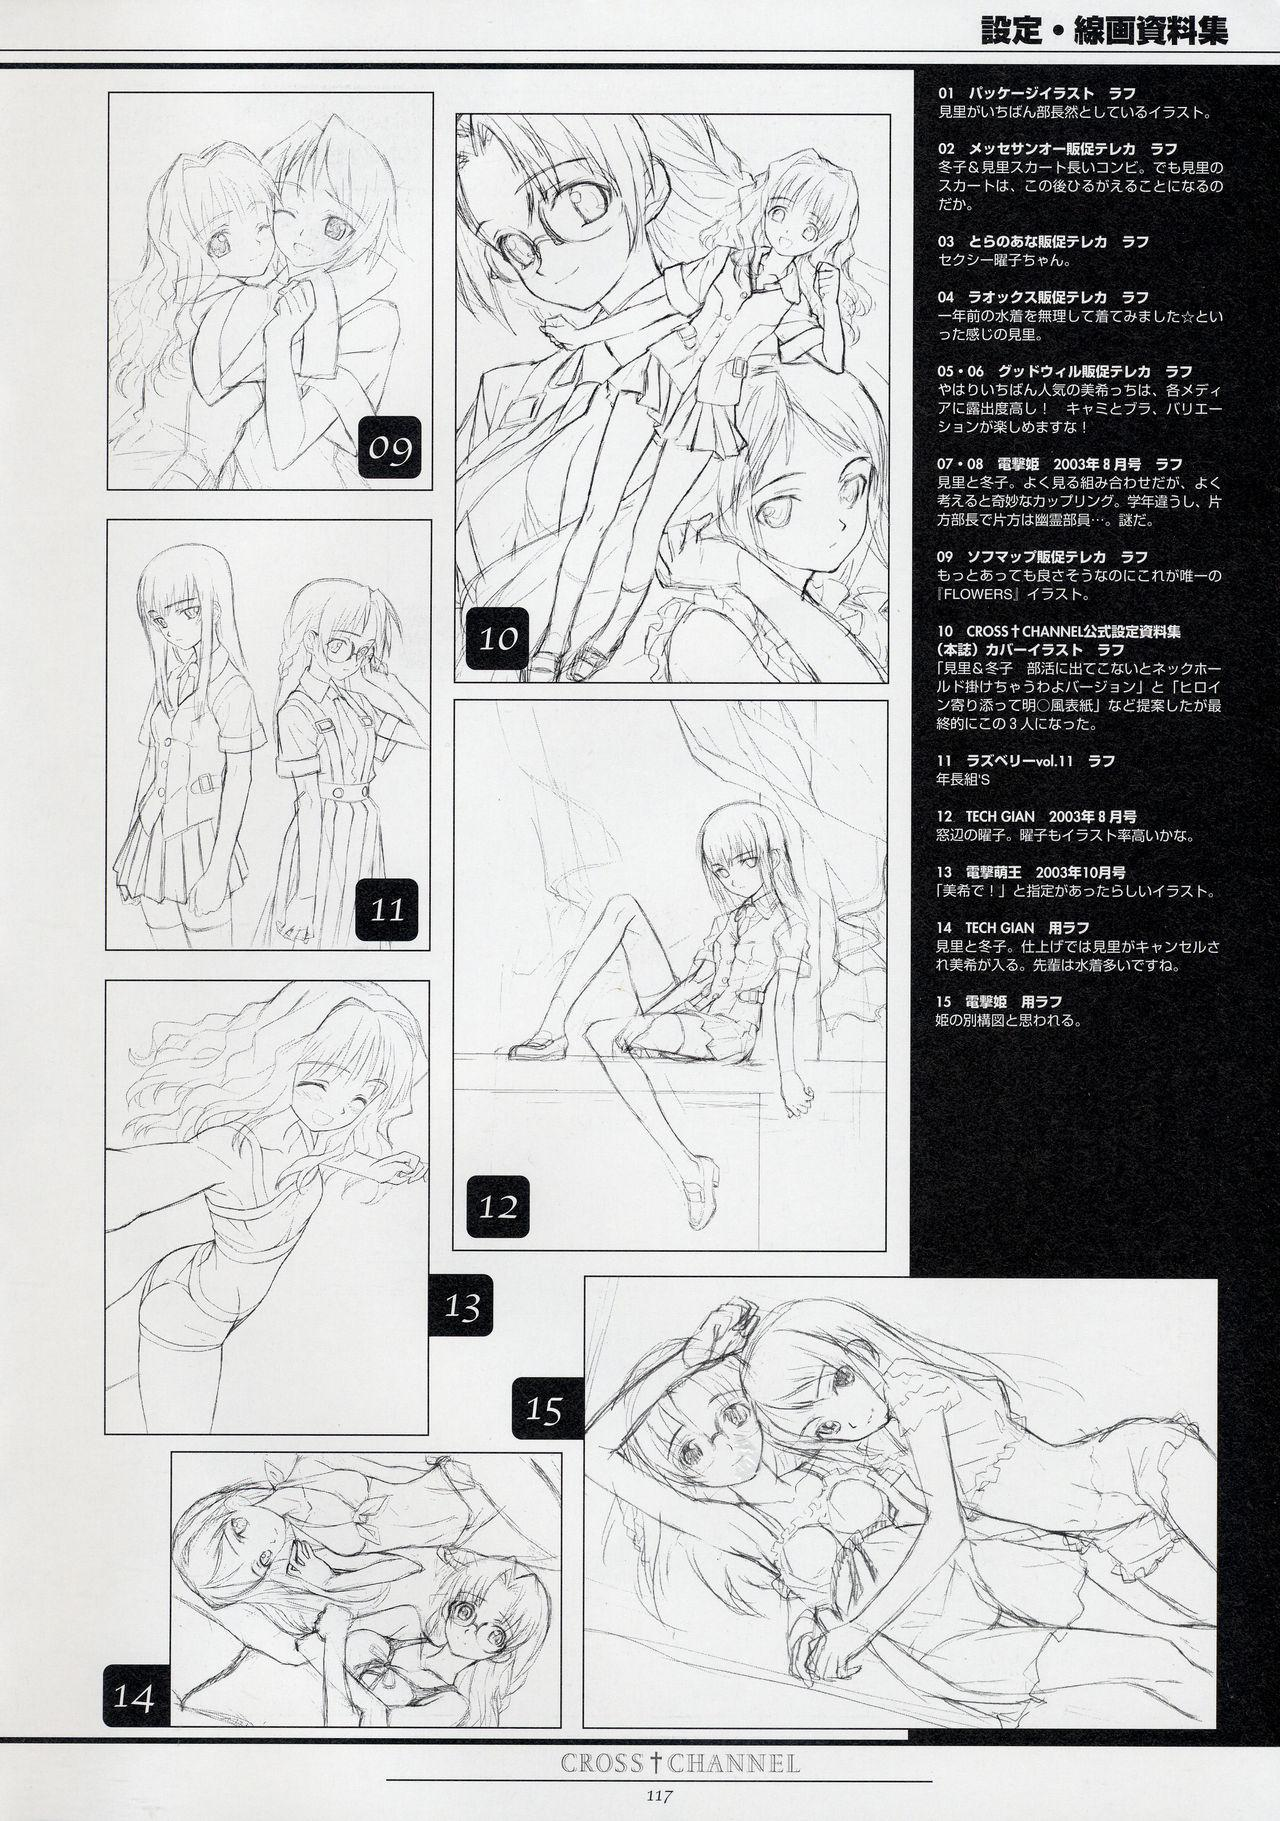 CROSS†CHANNEL Official Setting Materials 127